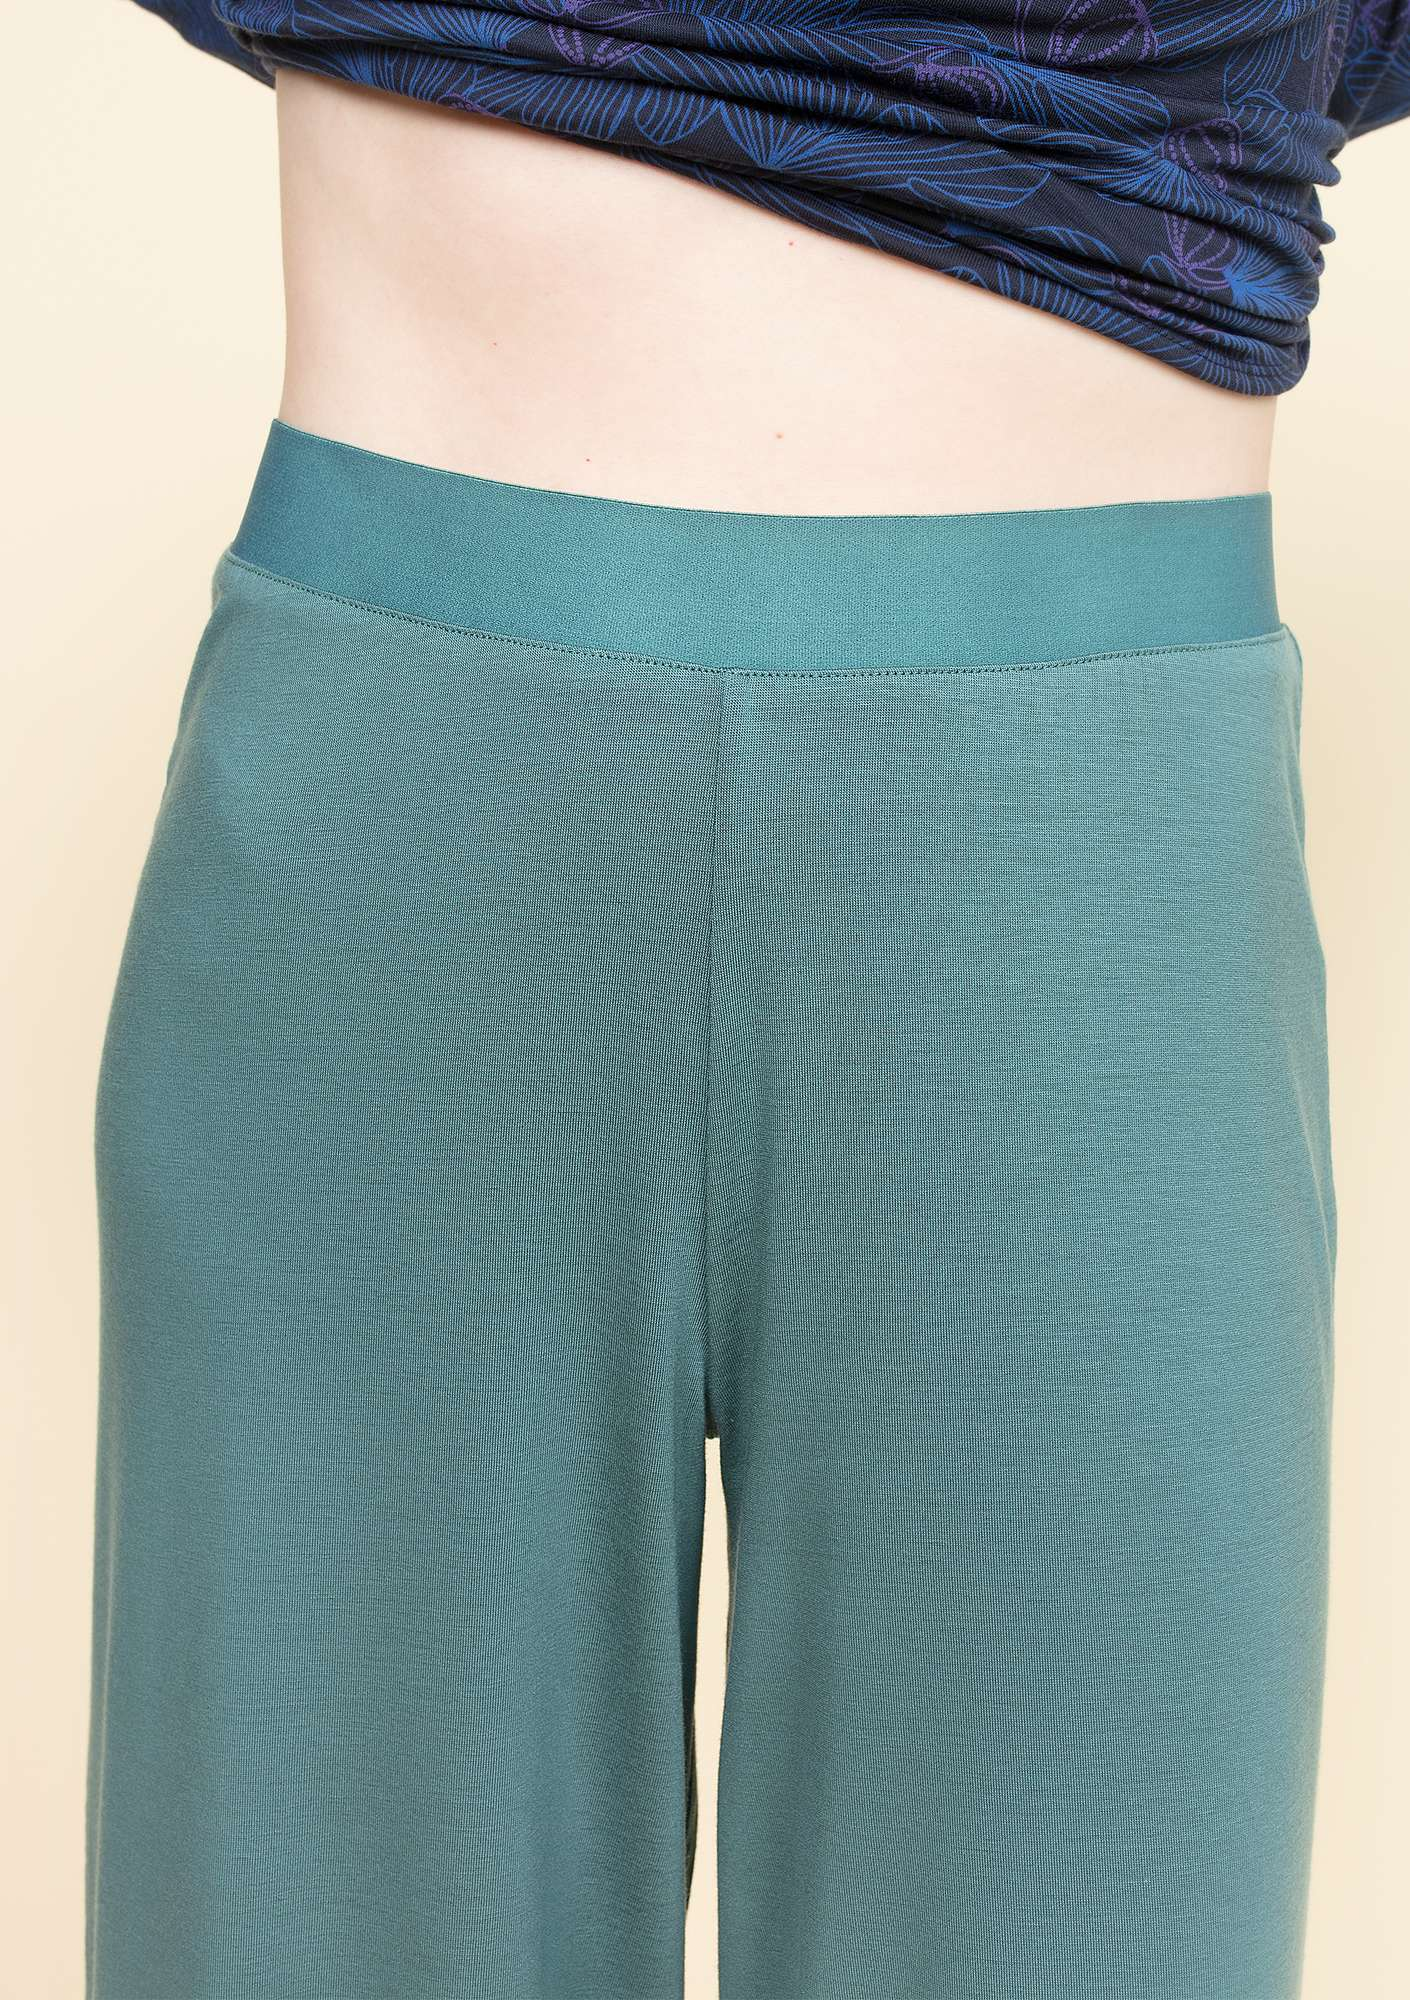 Trousers in lyocell/elastane tea tree